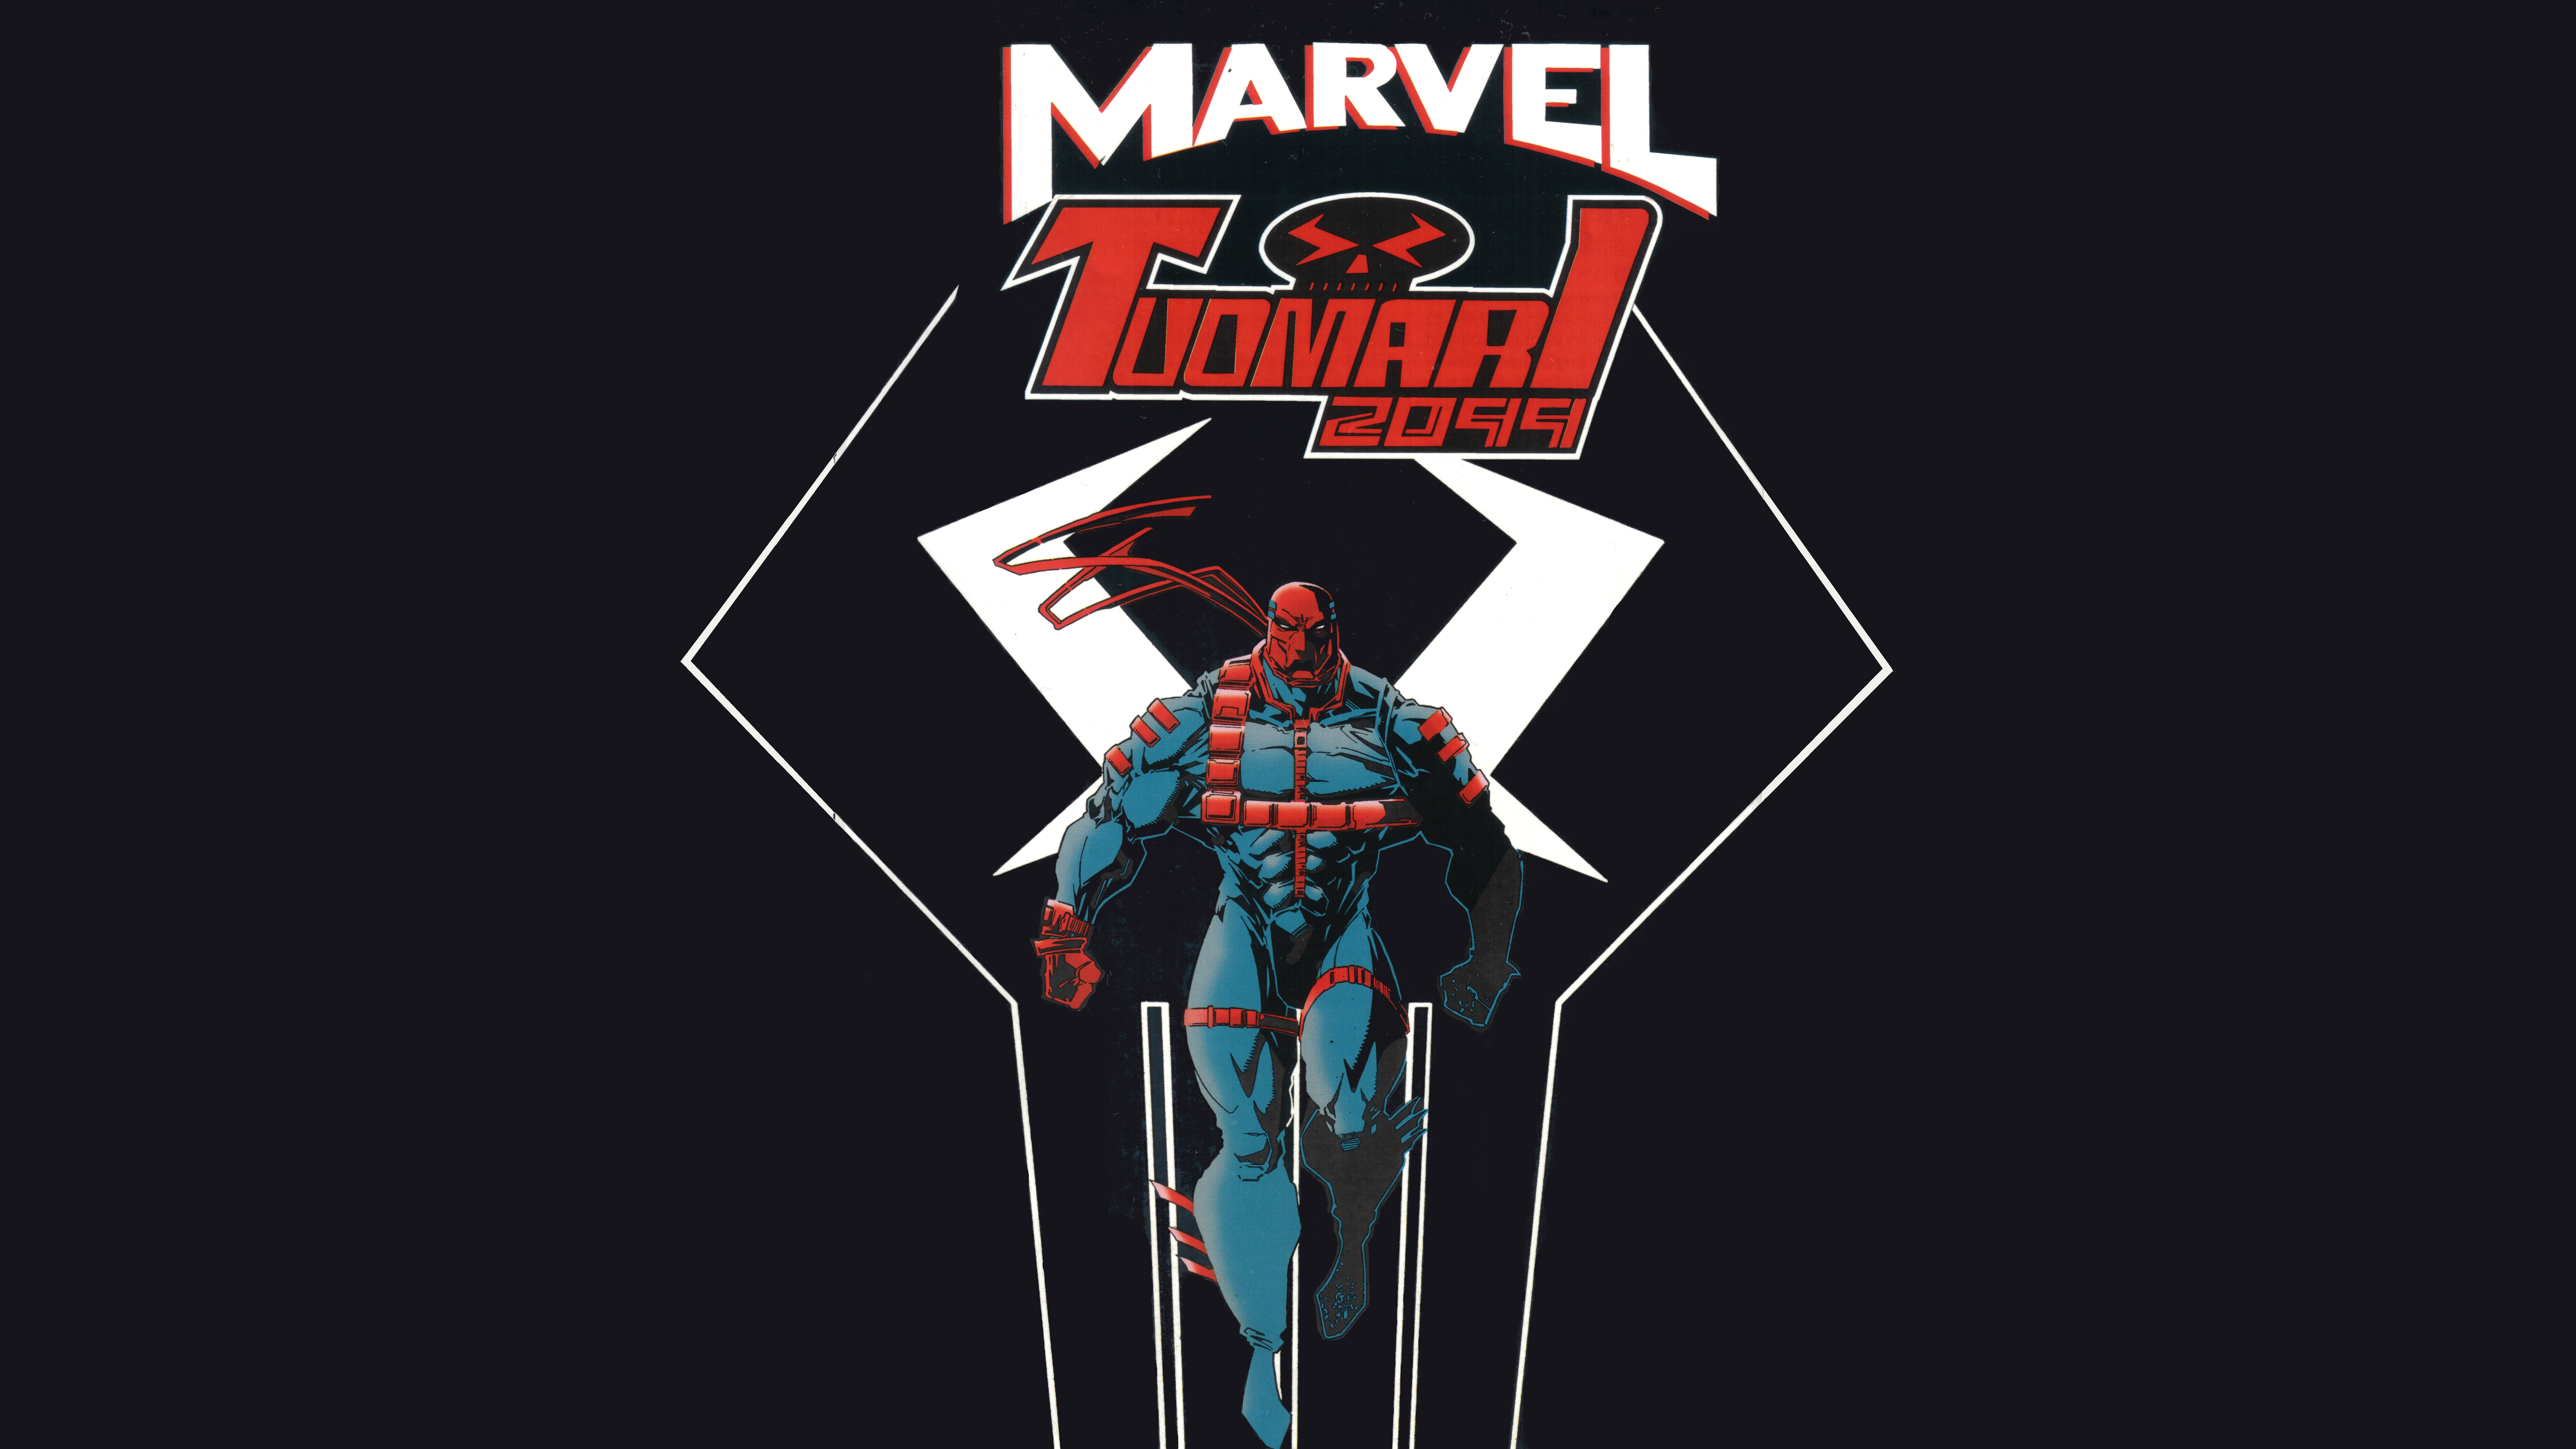 1 punisher 2099 hd wallpapers background images